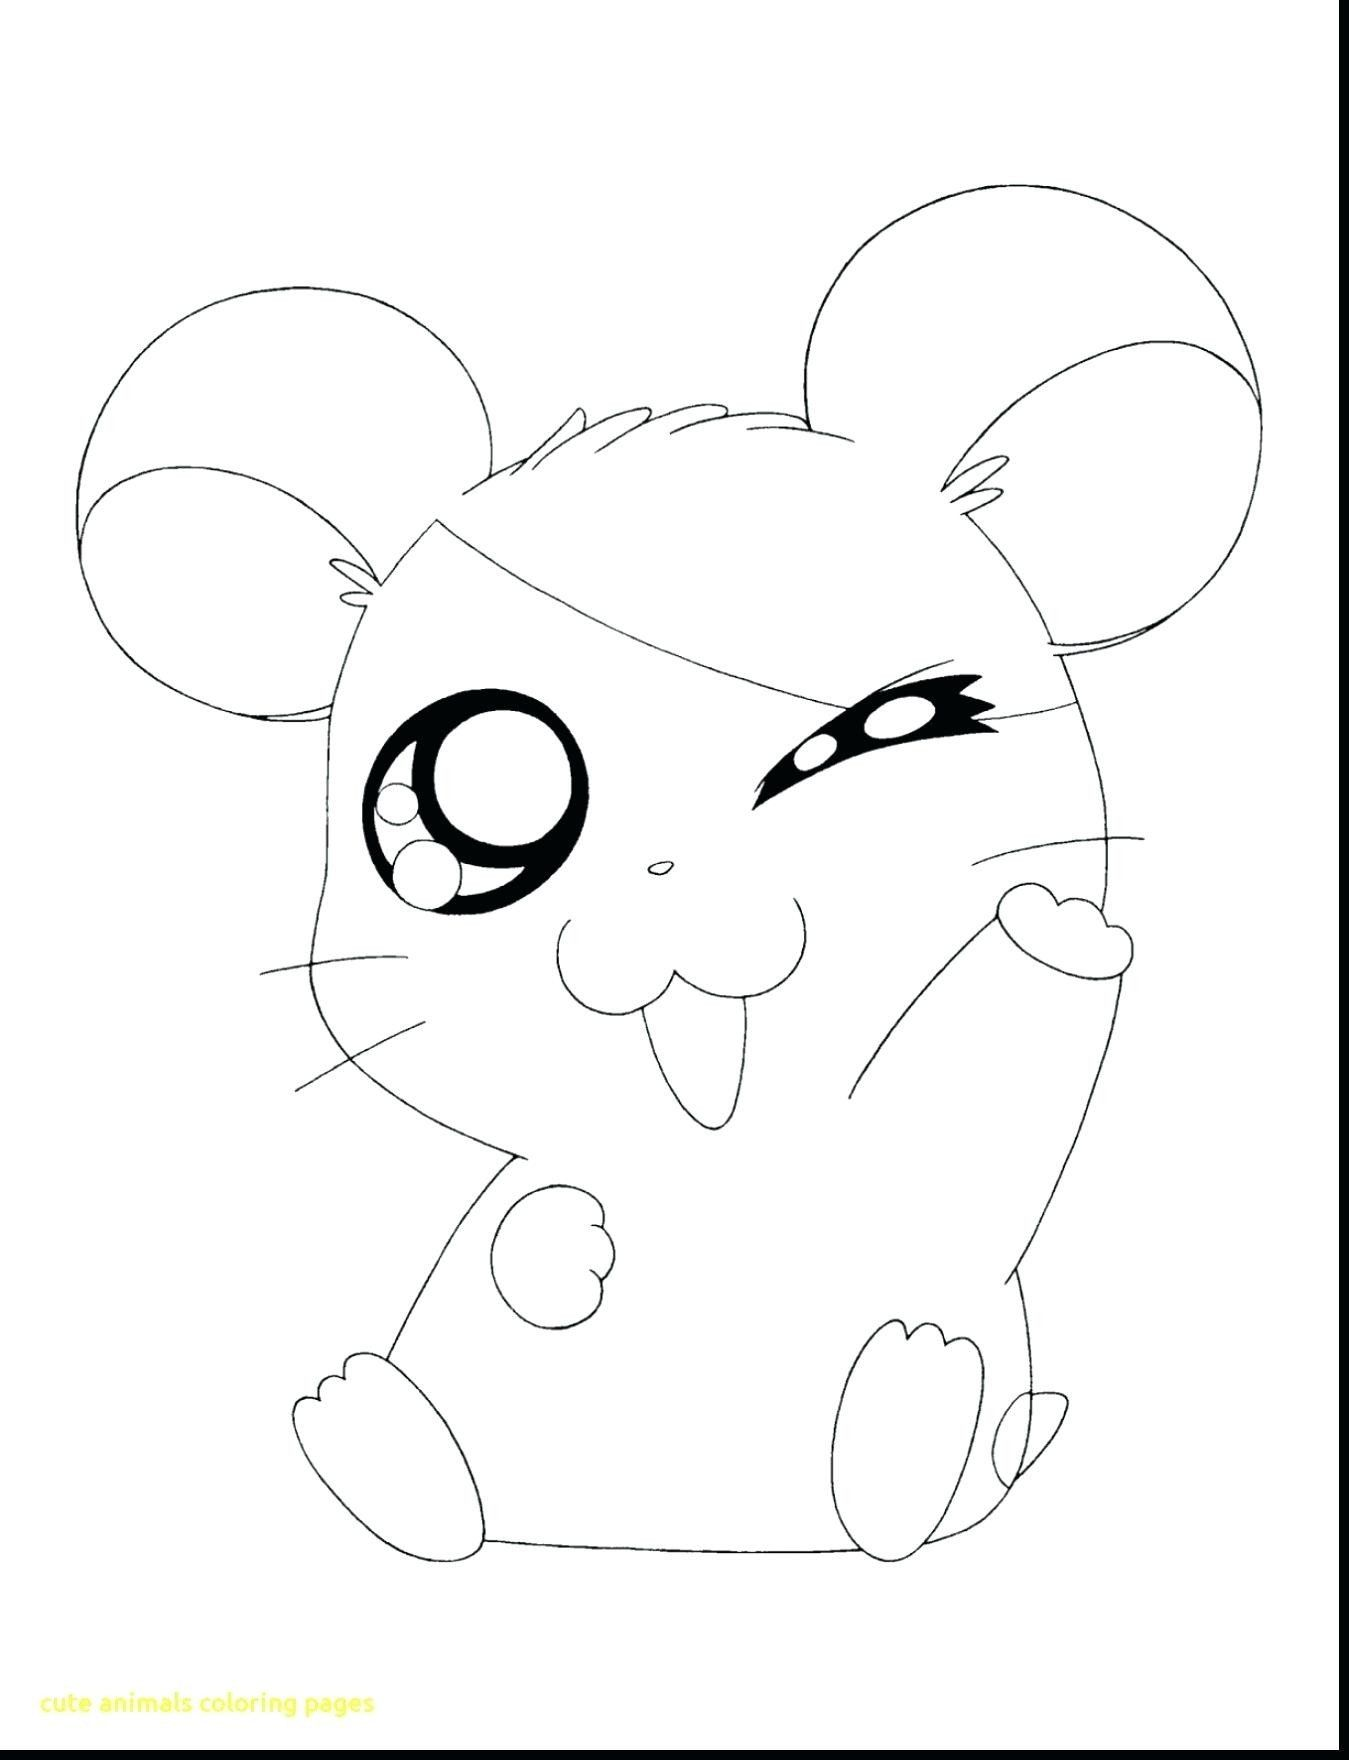 Baby Cartoon Animals Coloring Pages Google Search Baby Animal Simple Baby Animal Pictu In 2020 Zoo Animal Coloring Pages Animal Coloring Pages Cartoon Coloring Pages